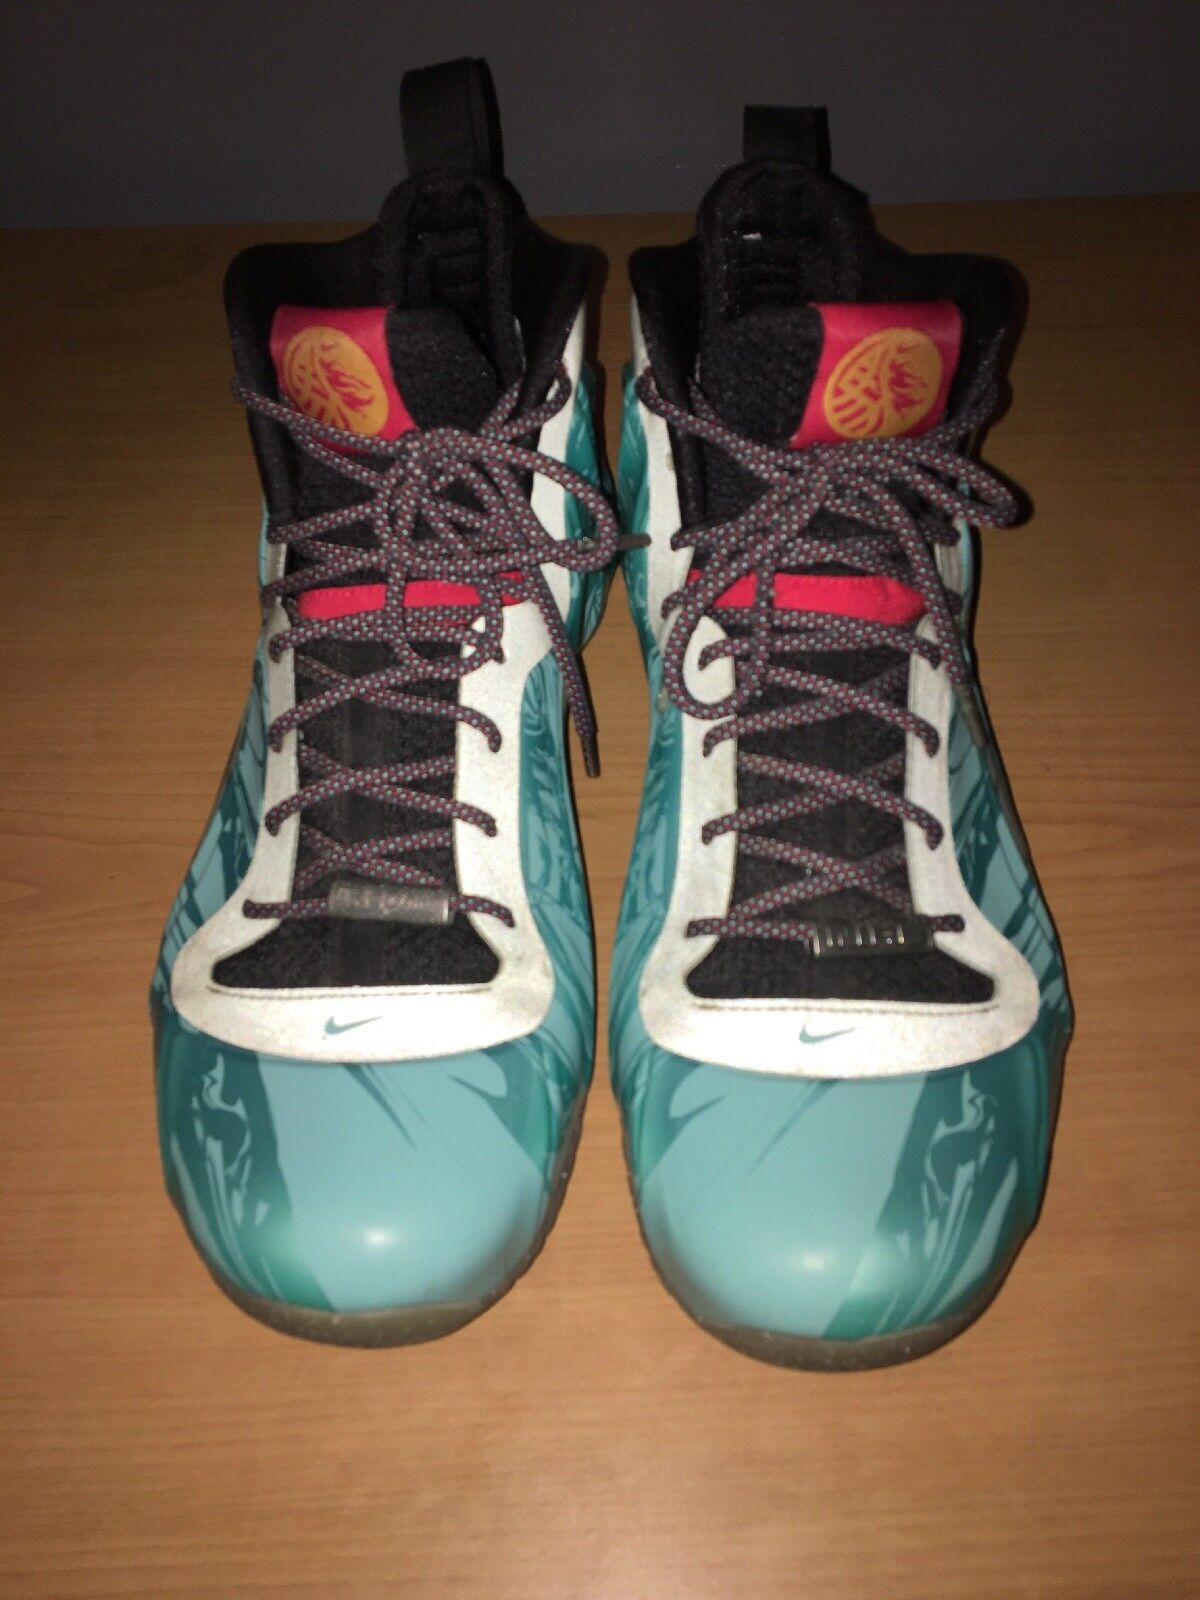 Nike Air Flightposite Exposed YOH  Cheap and fashionable